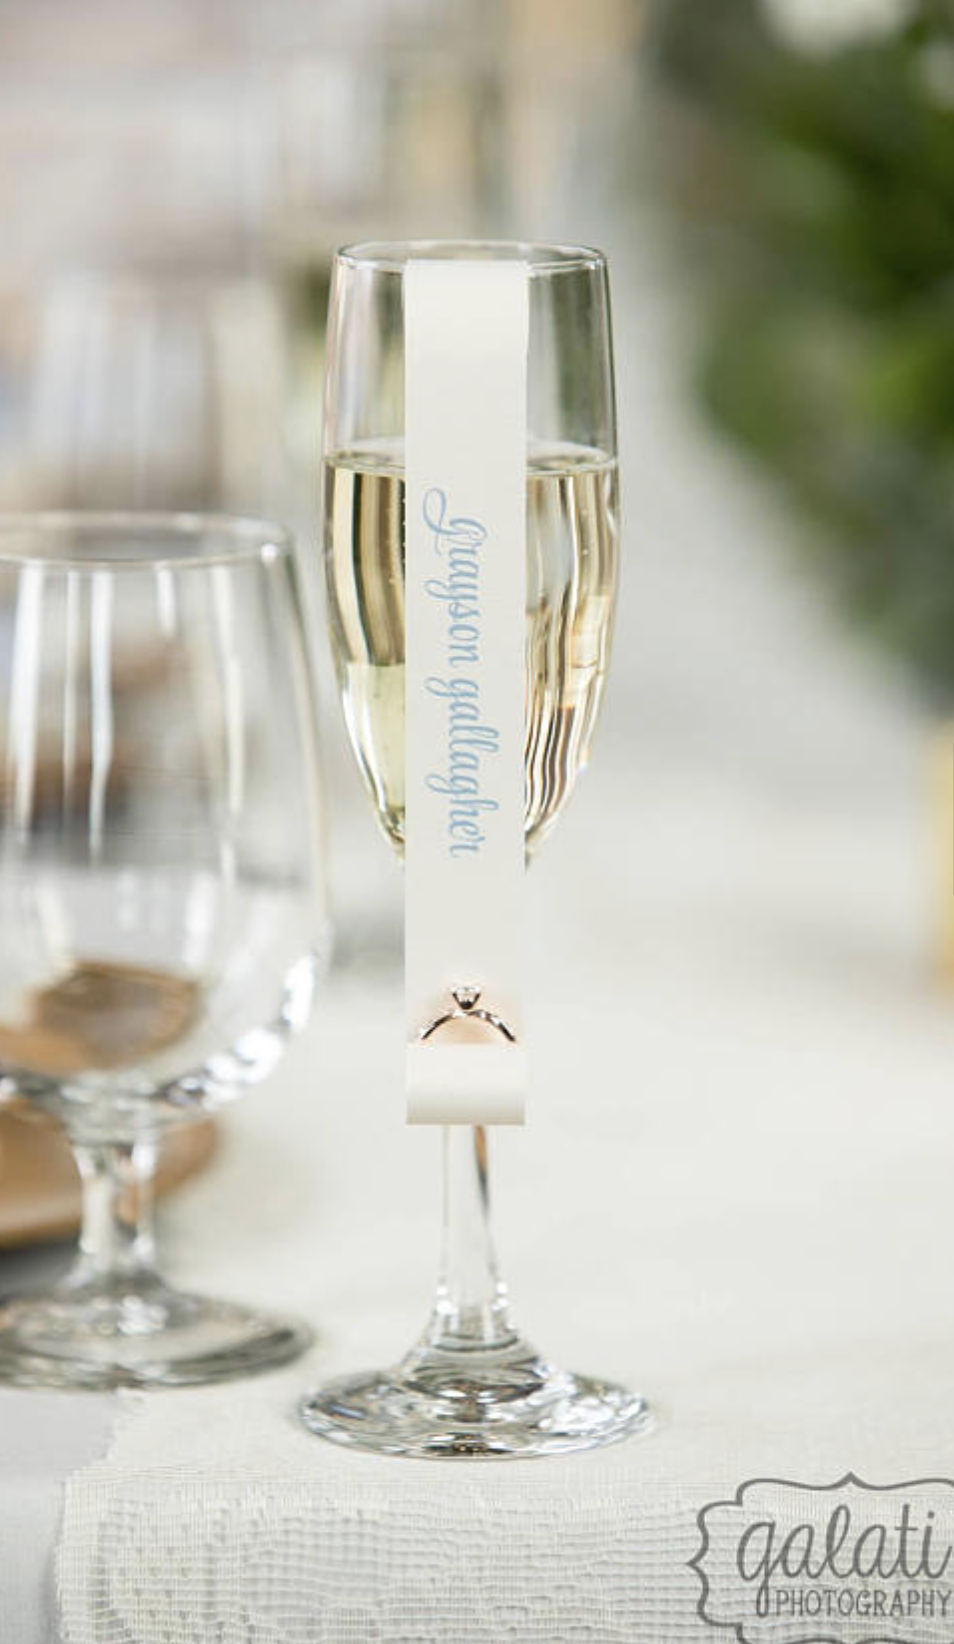 Double sided scroll place cards for champagne flutes